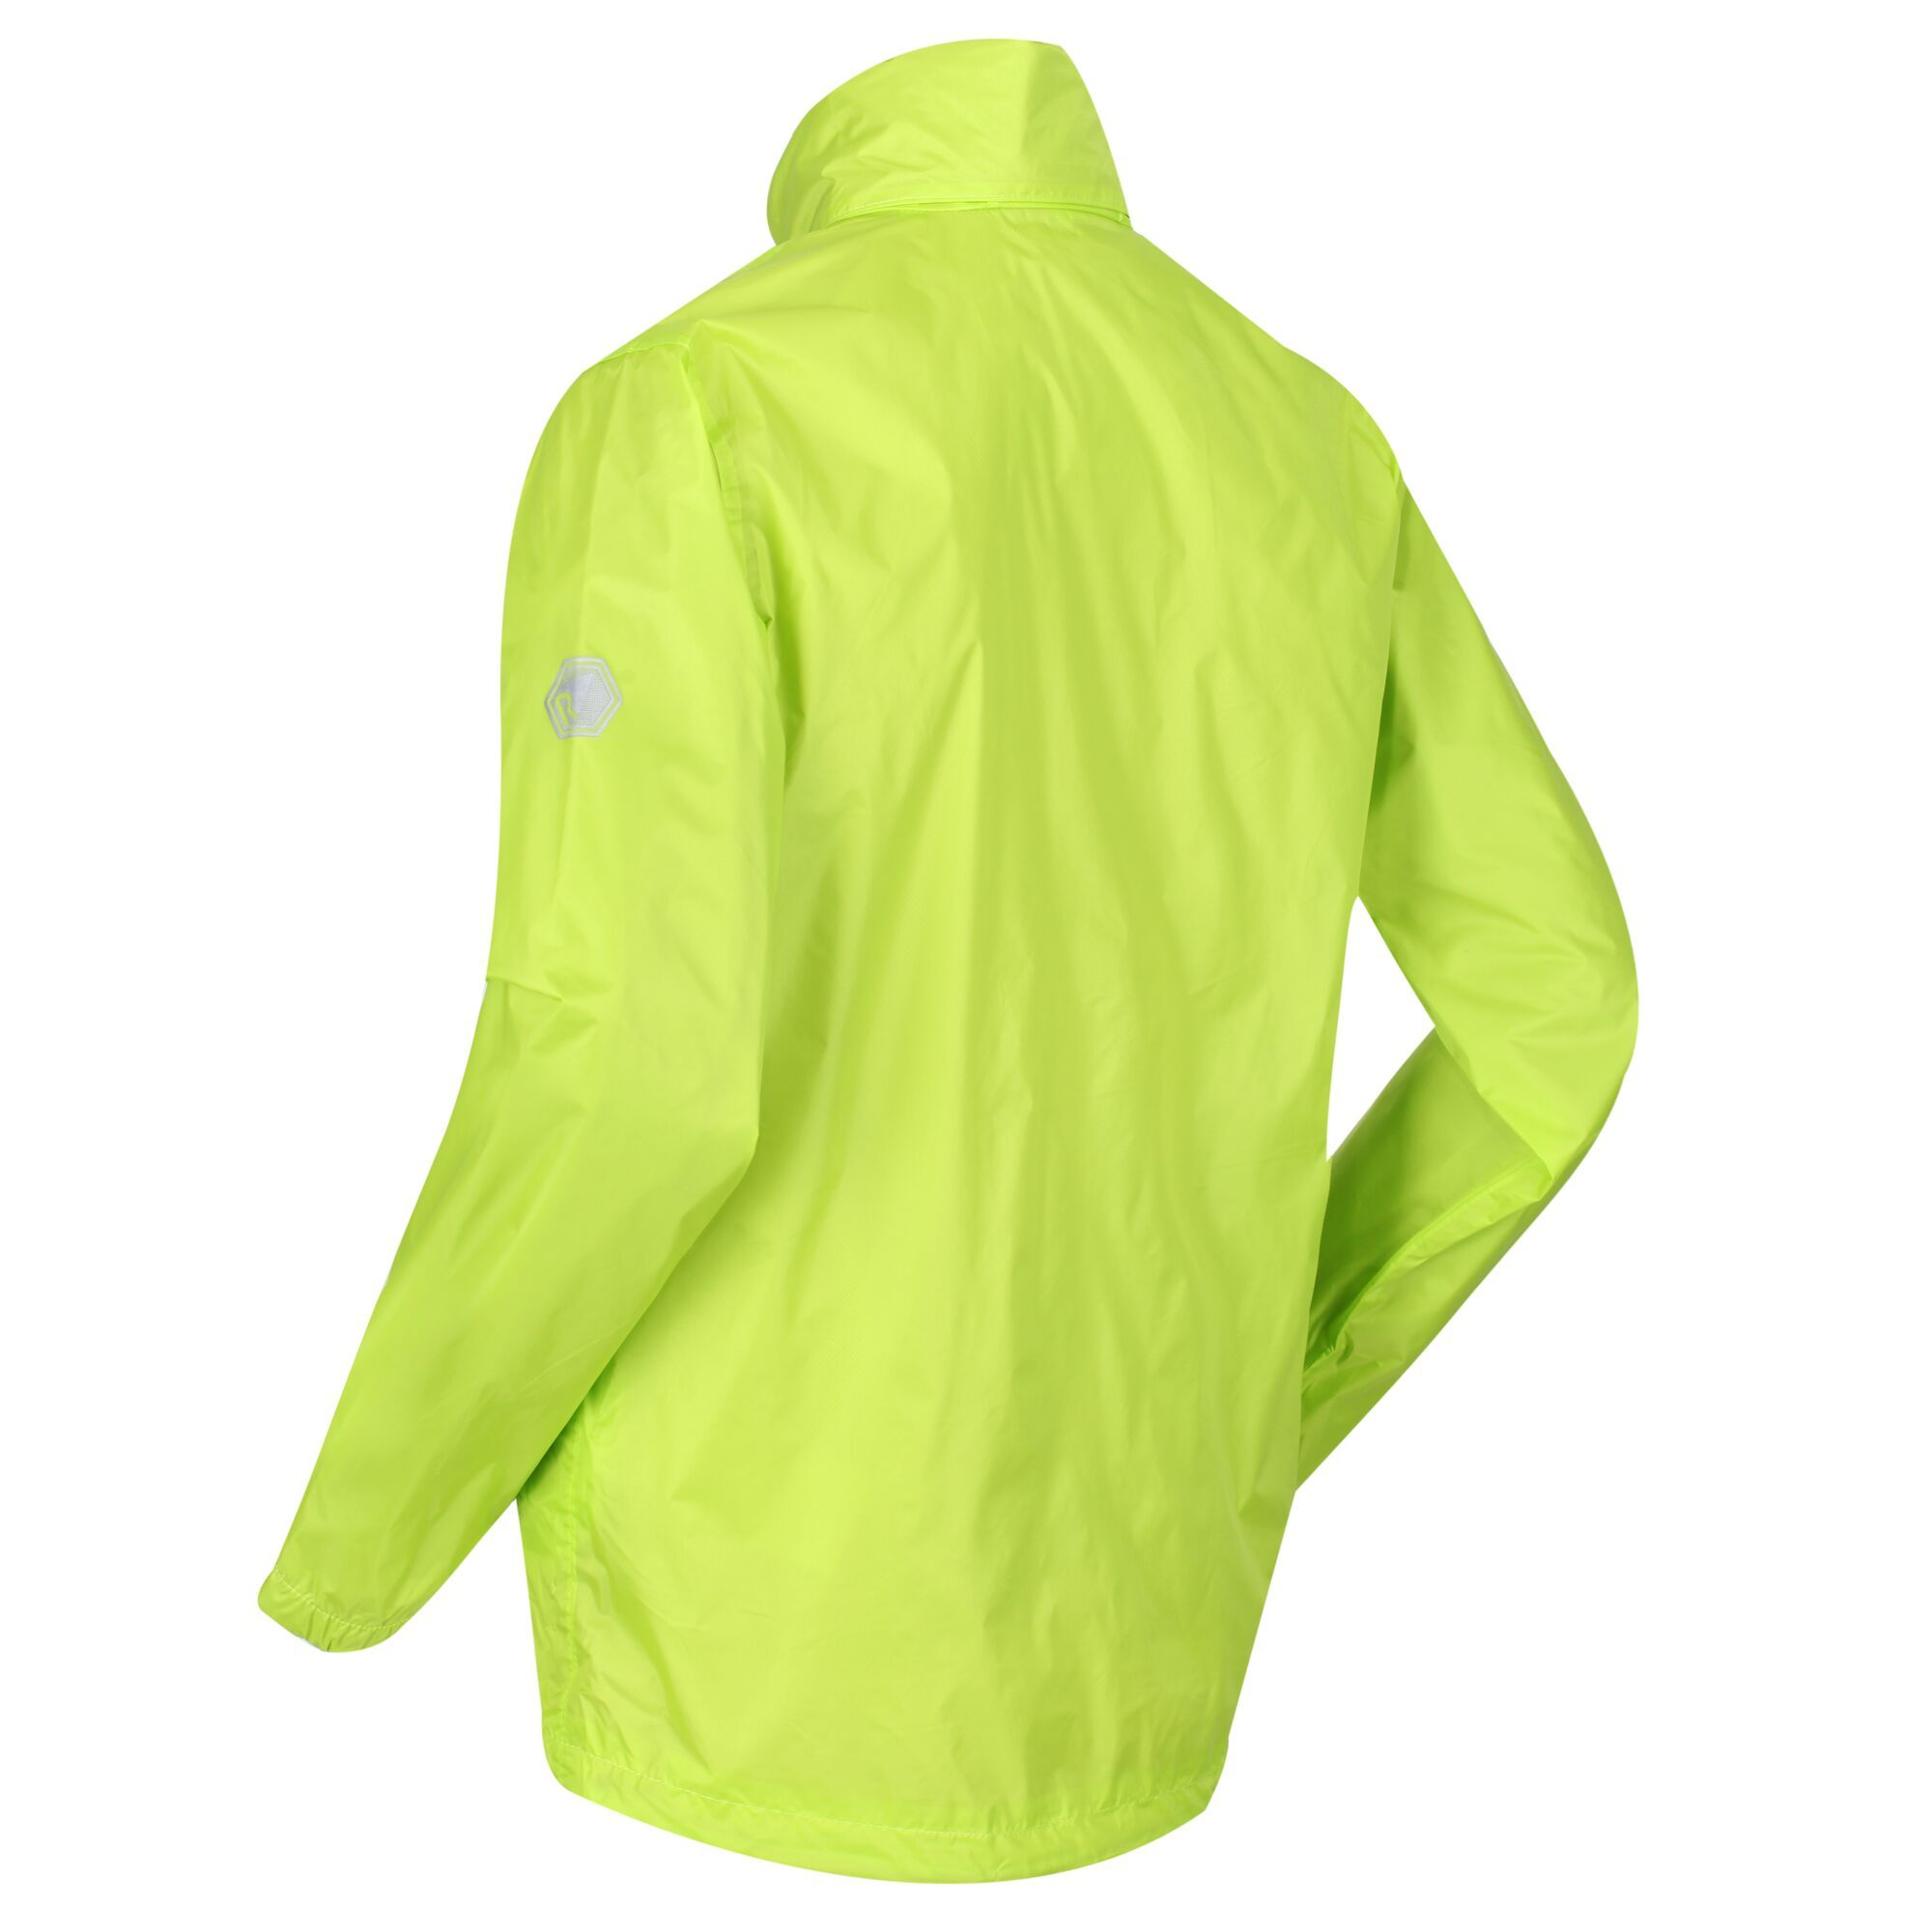 Mens-Regatta-Lightweight-Waterproof-Windproof-Jacket-Clearance-RRP-70-00 thumbnail 34